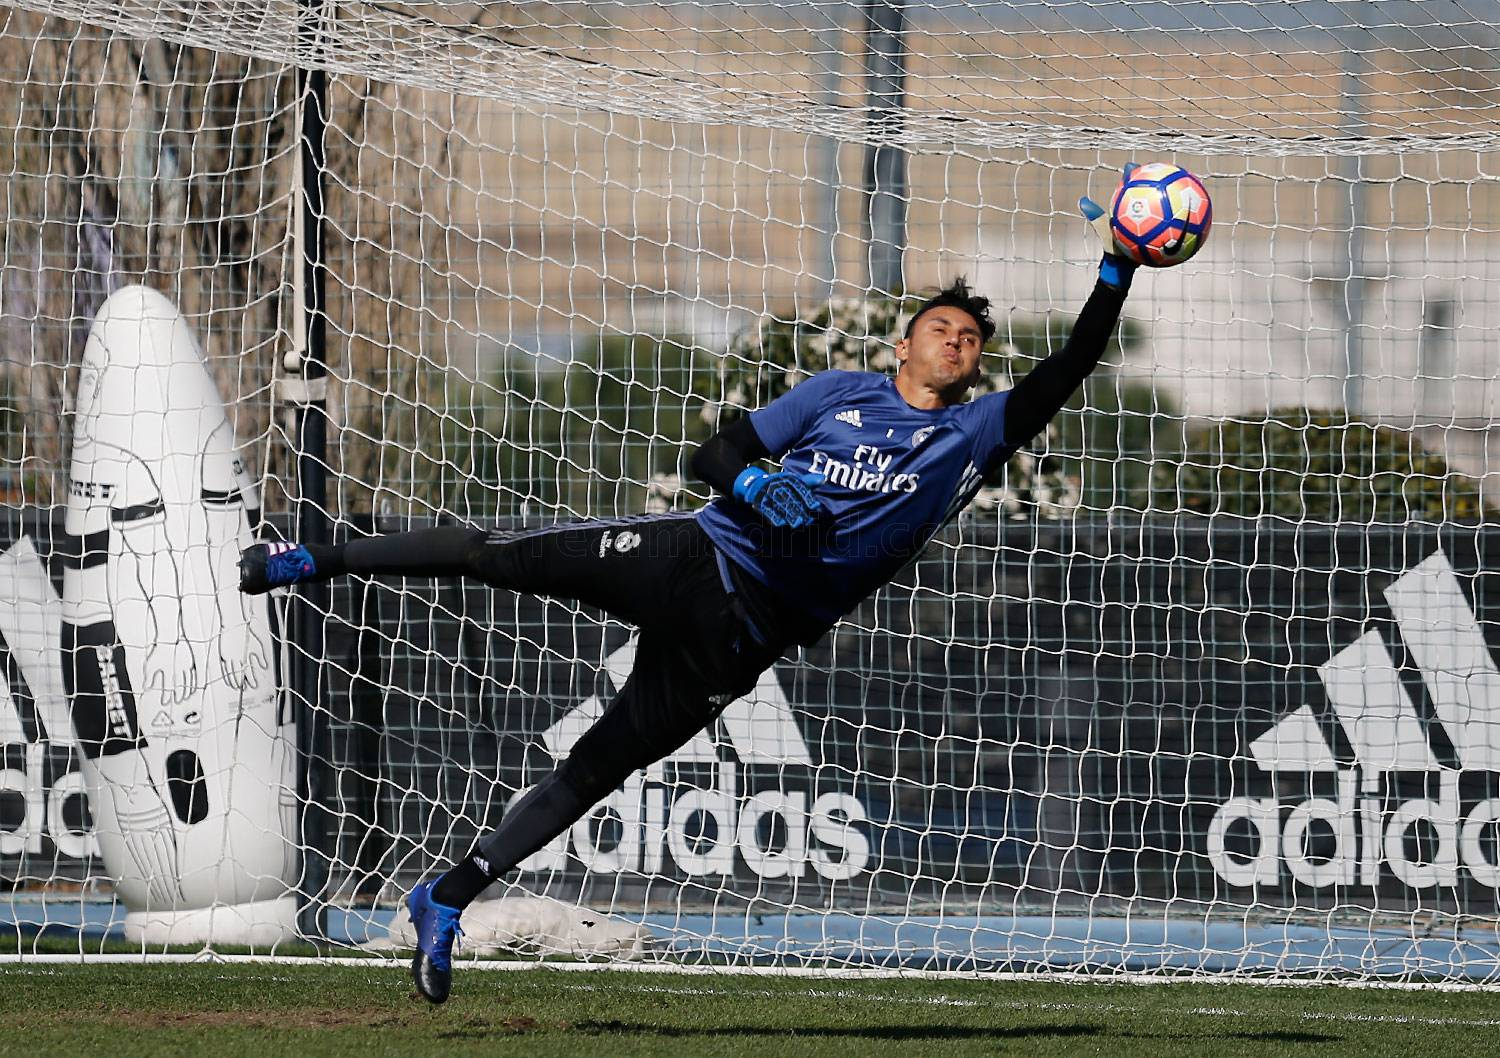 Real Madrid - Entrenamiento del Real Madrid - 11-03-2017